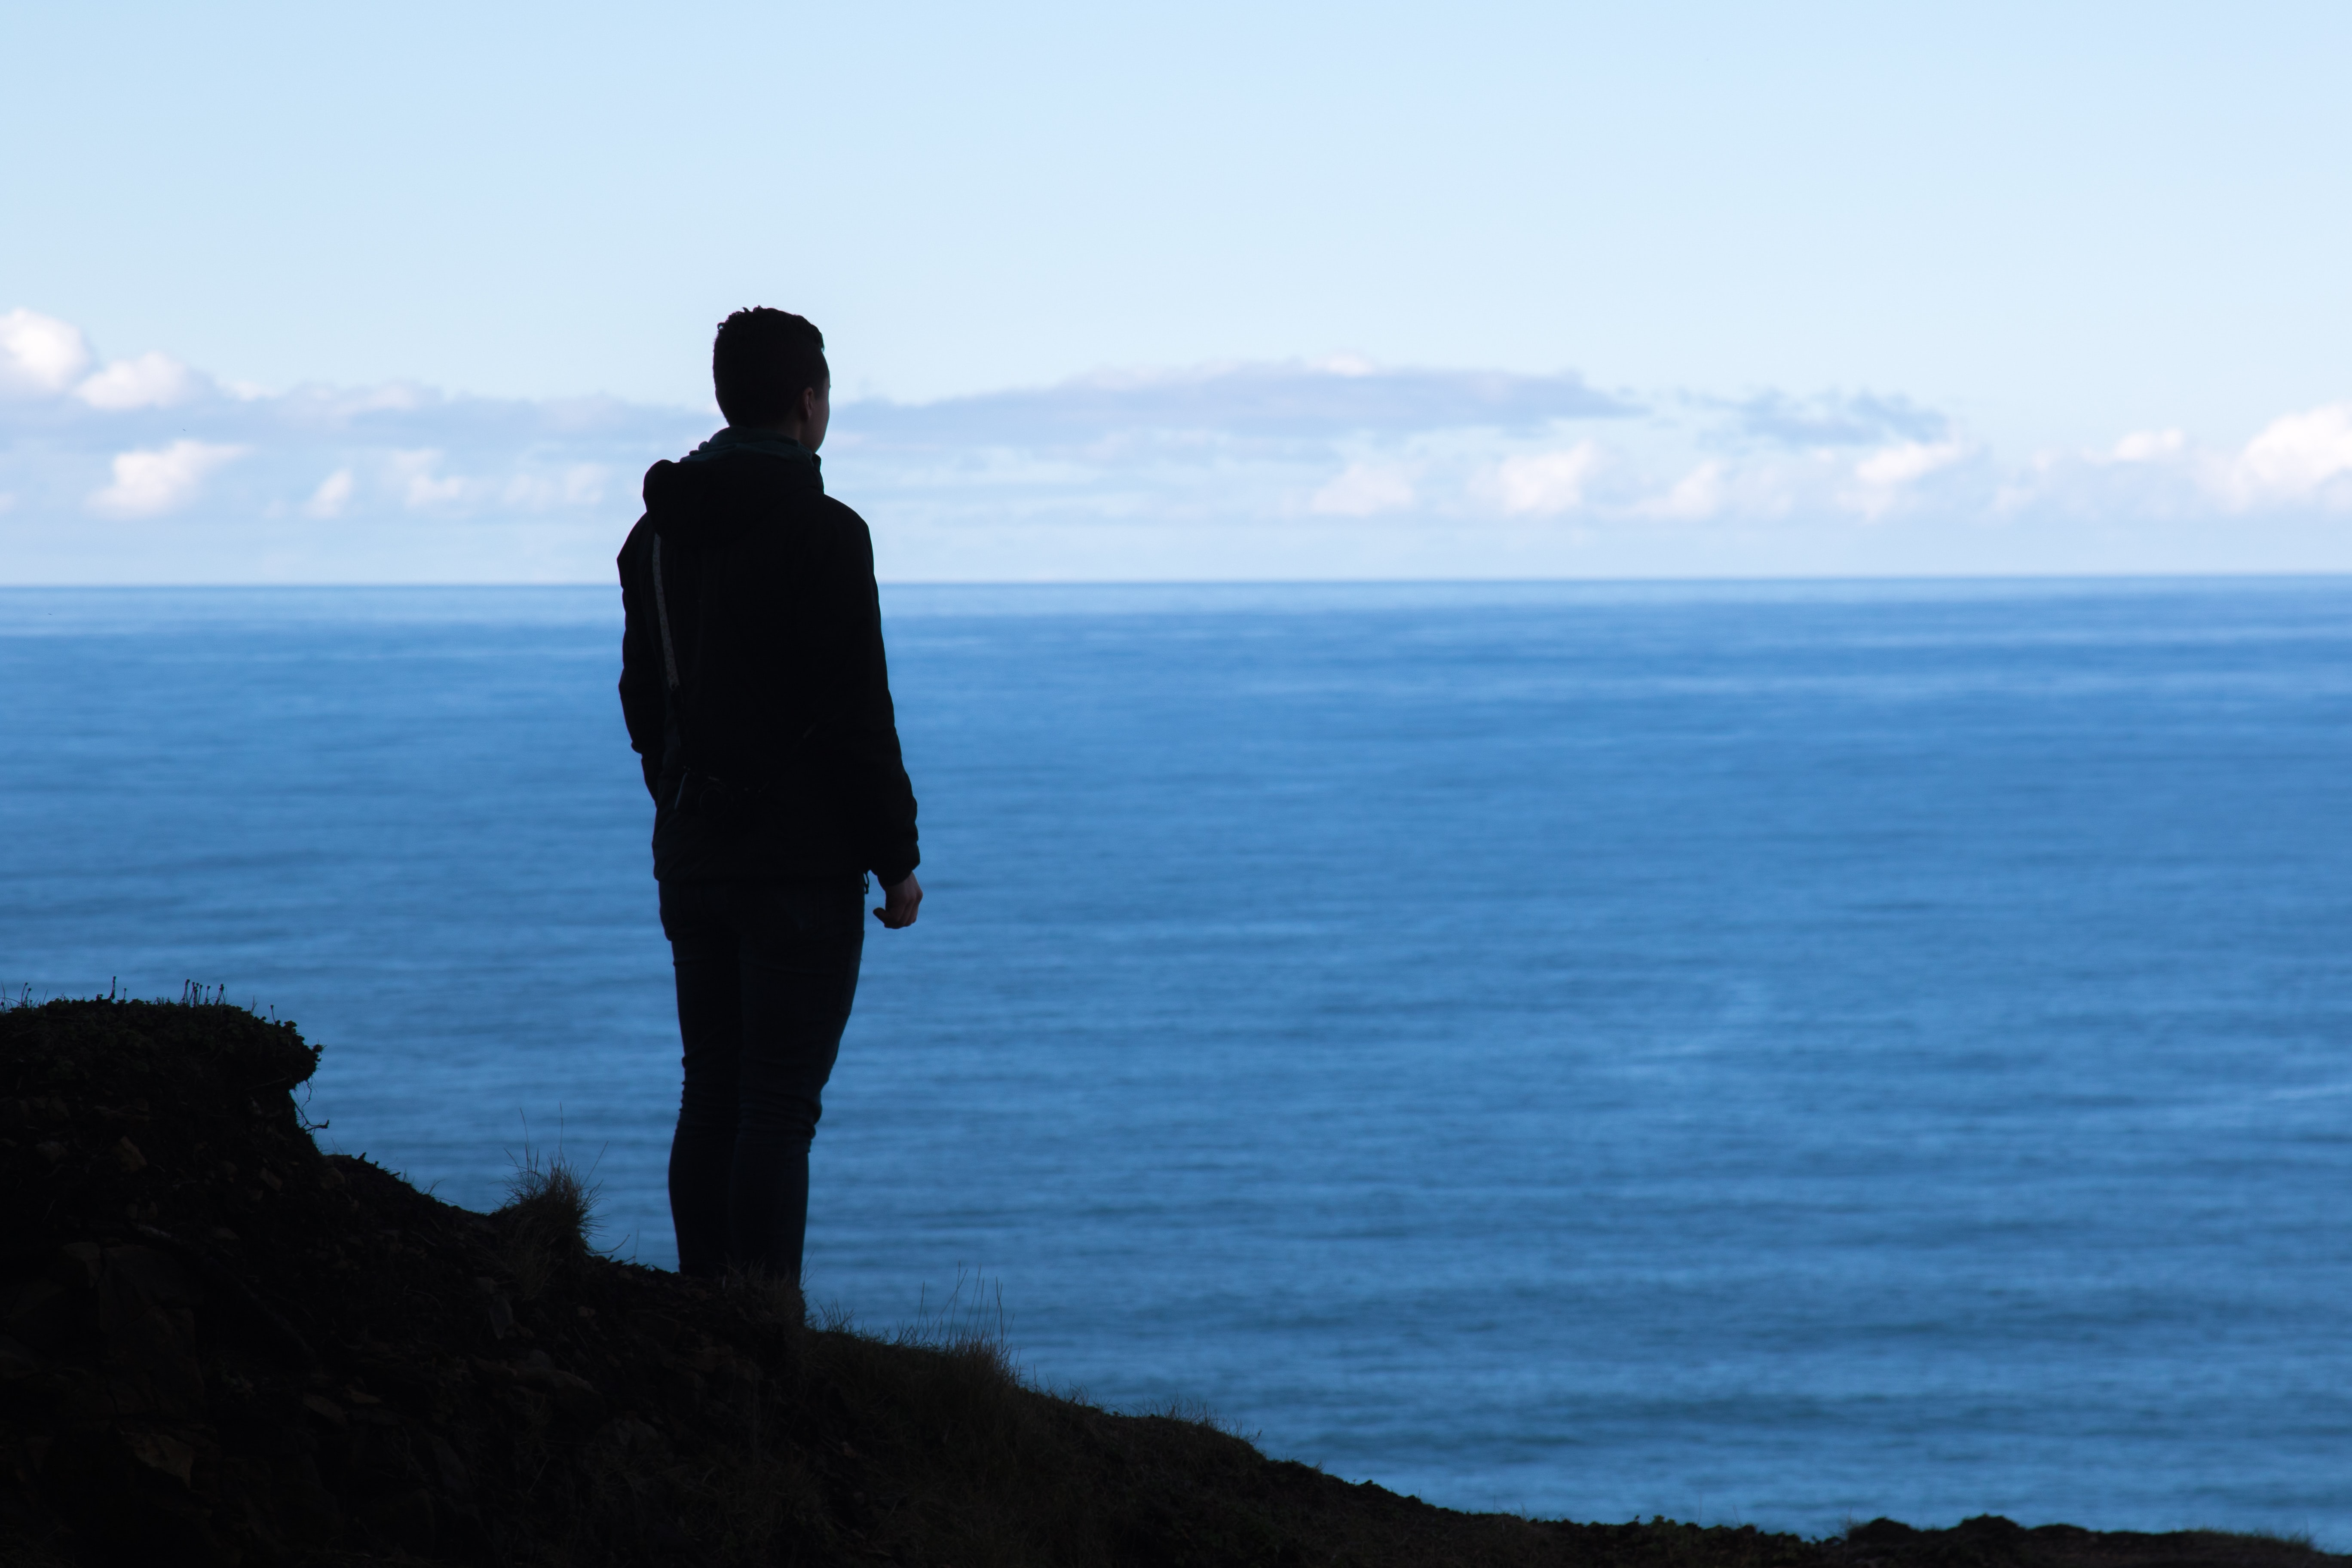 man standing near cliff watching the overview of body of water